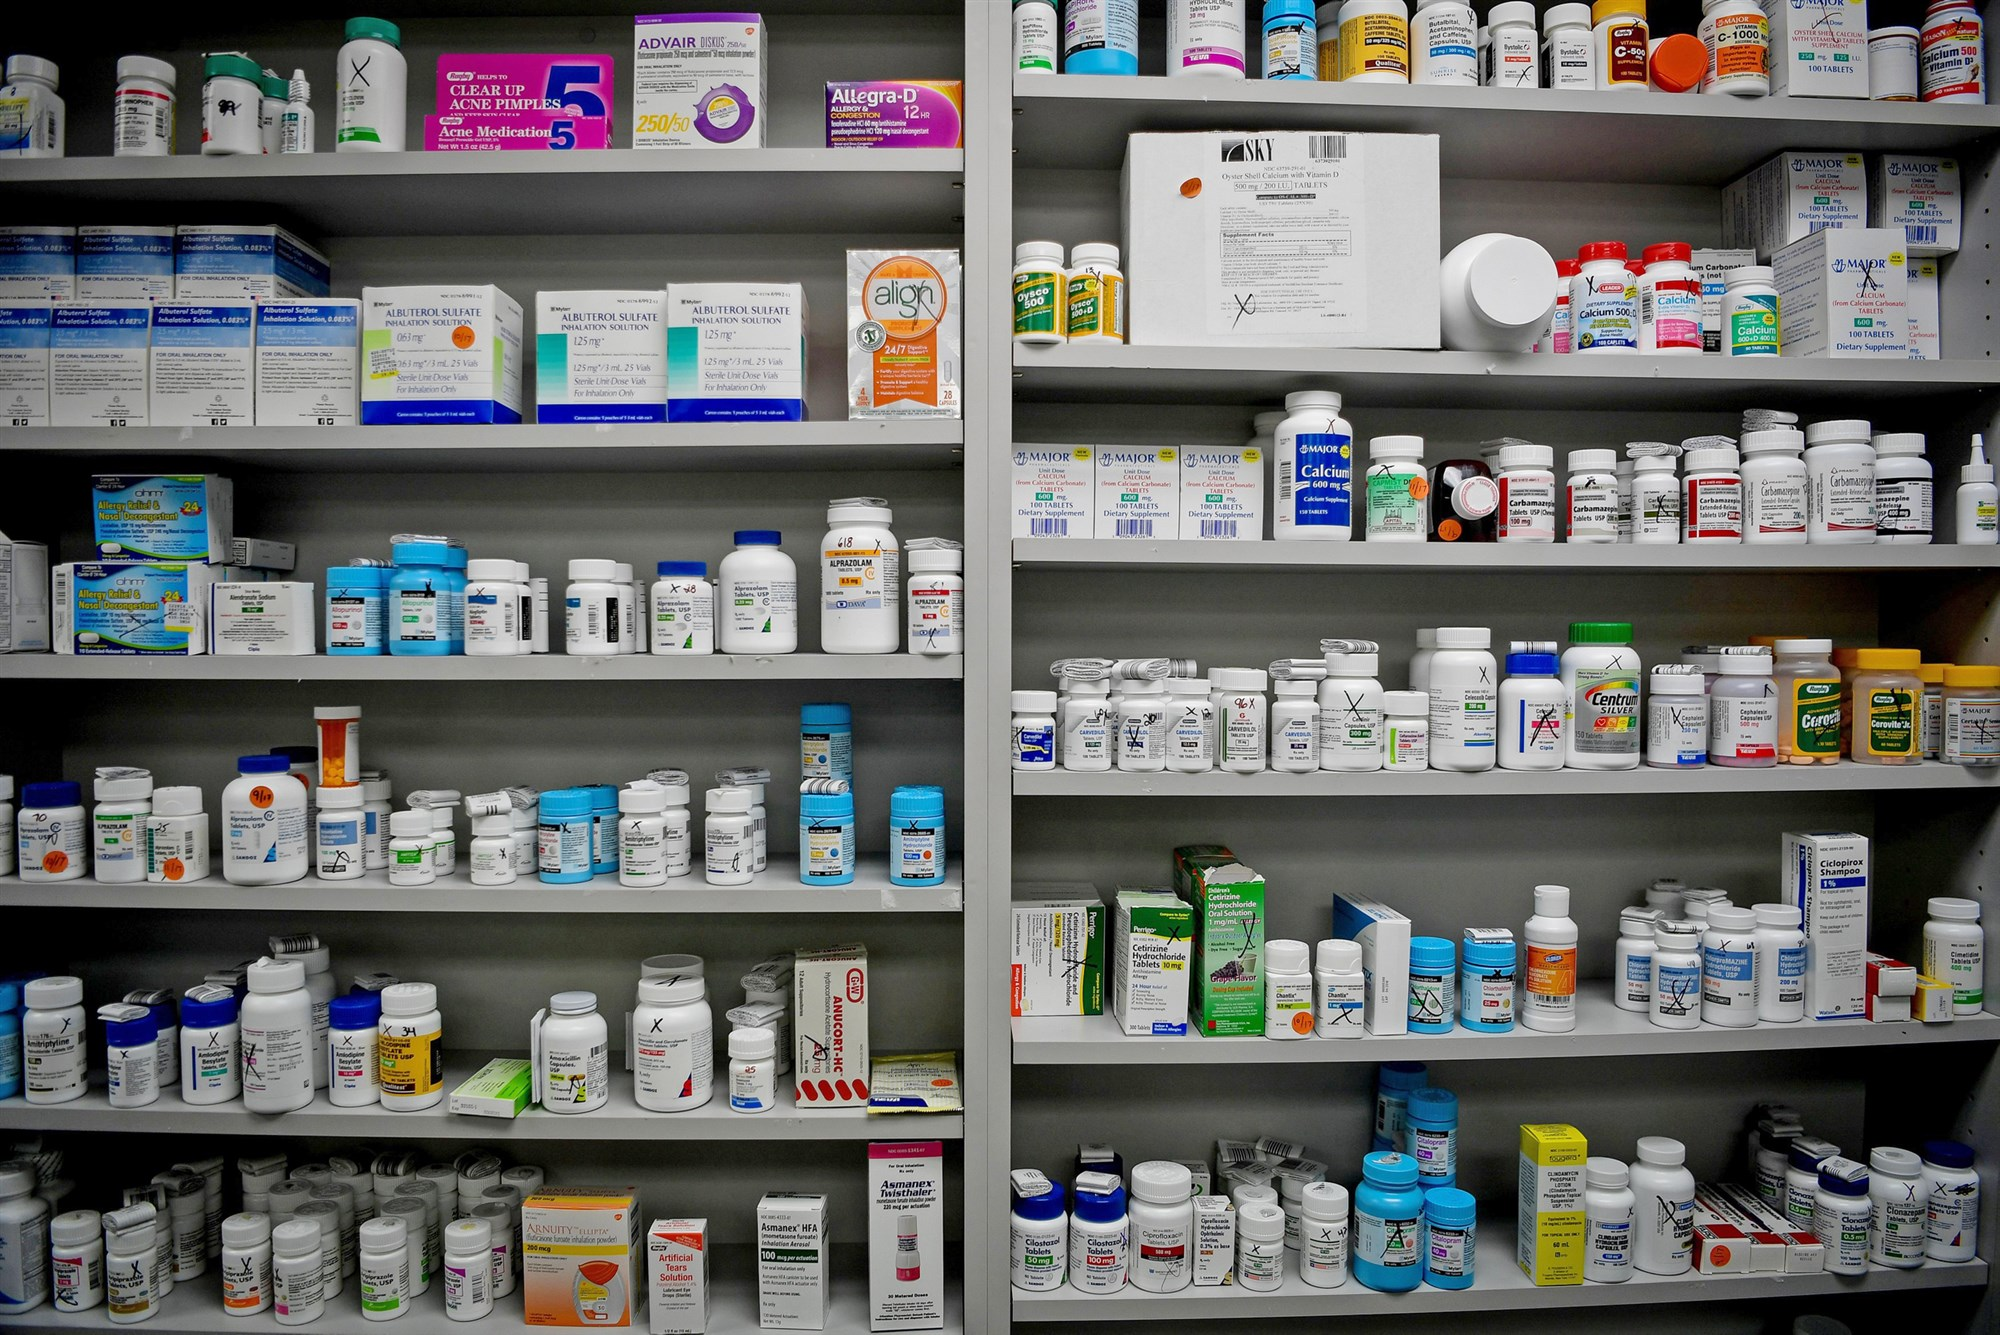 Your Helpful Community Pharmacy - Grass Lake is home to the managers and most of our pharmacy staff. We are here to help our friends and neighbors get well, and live healthy lives.